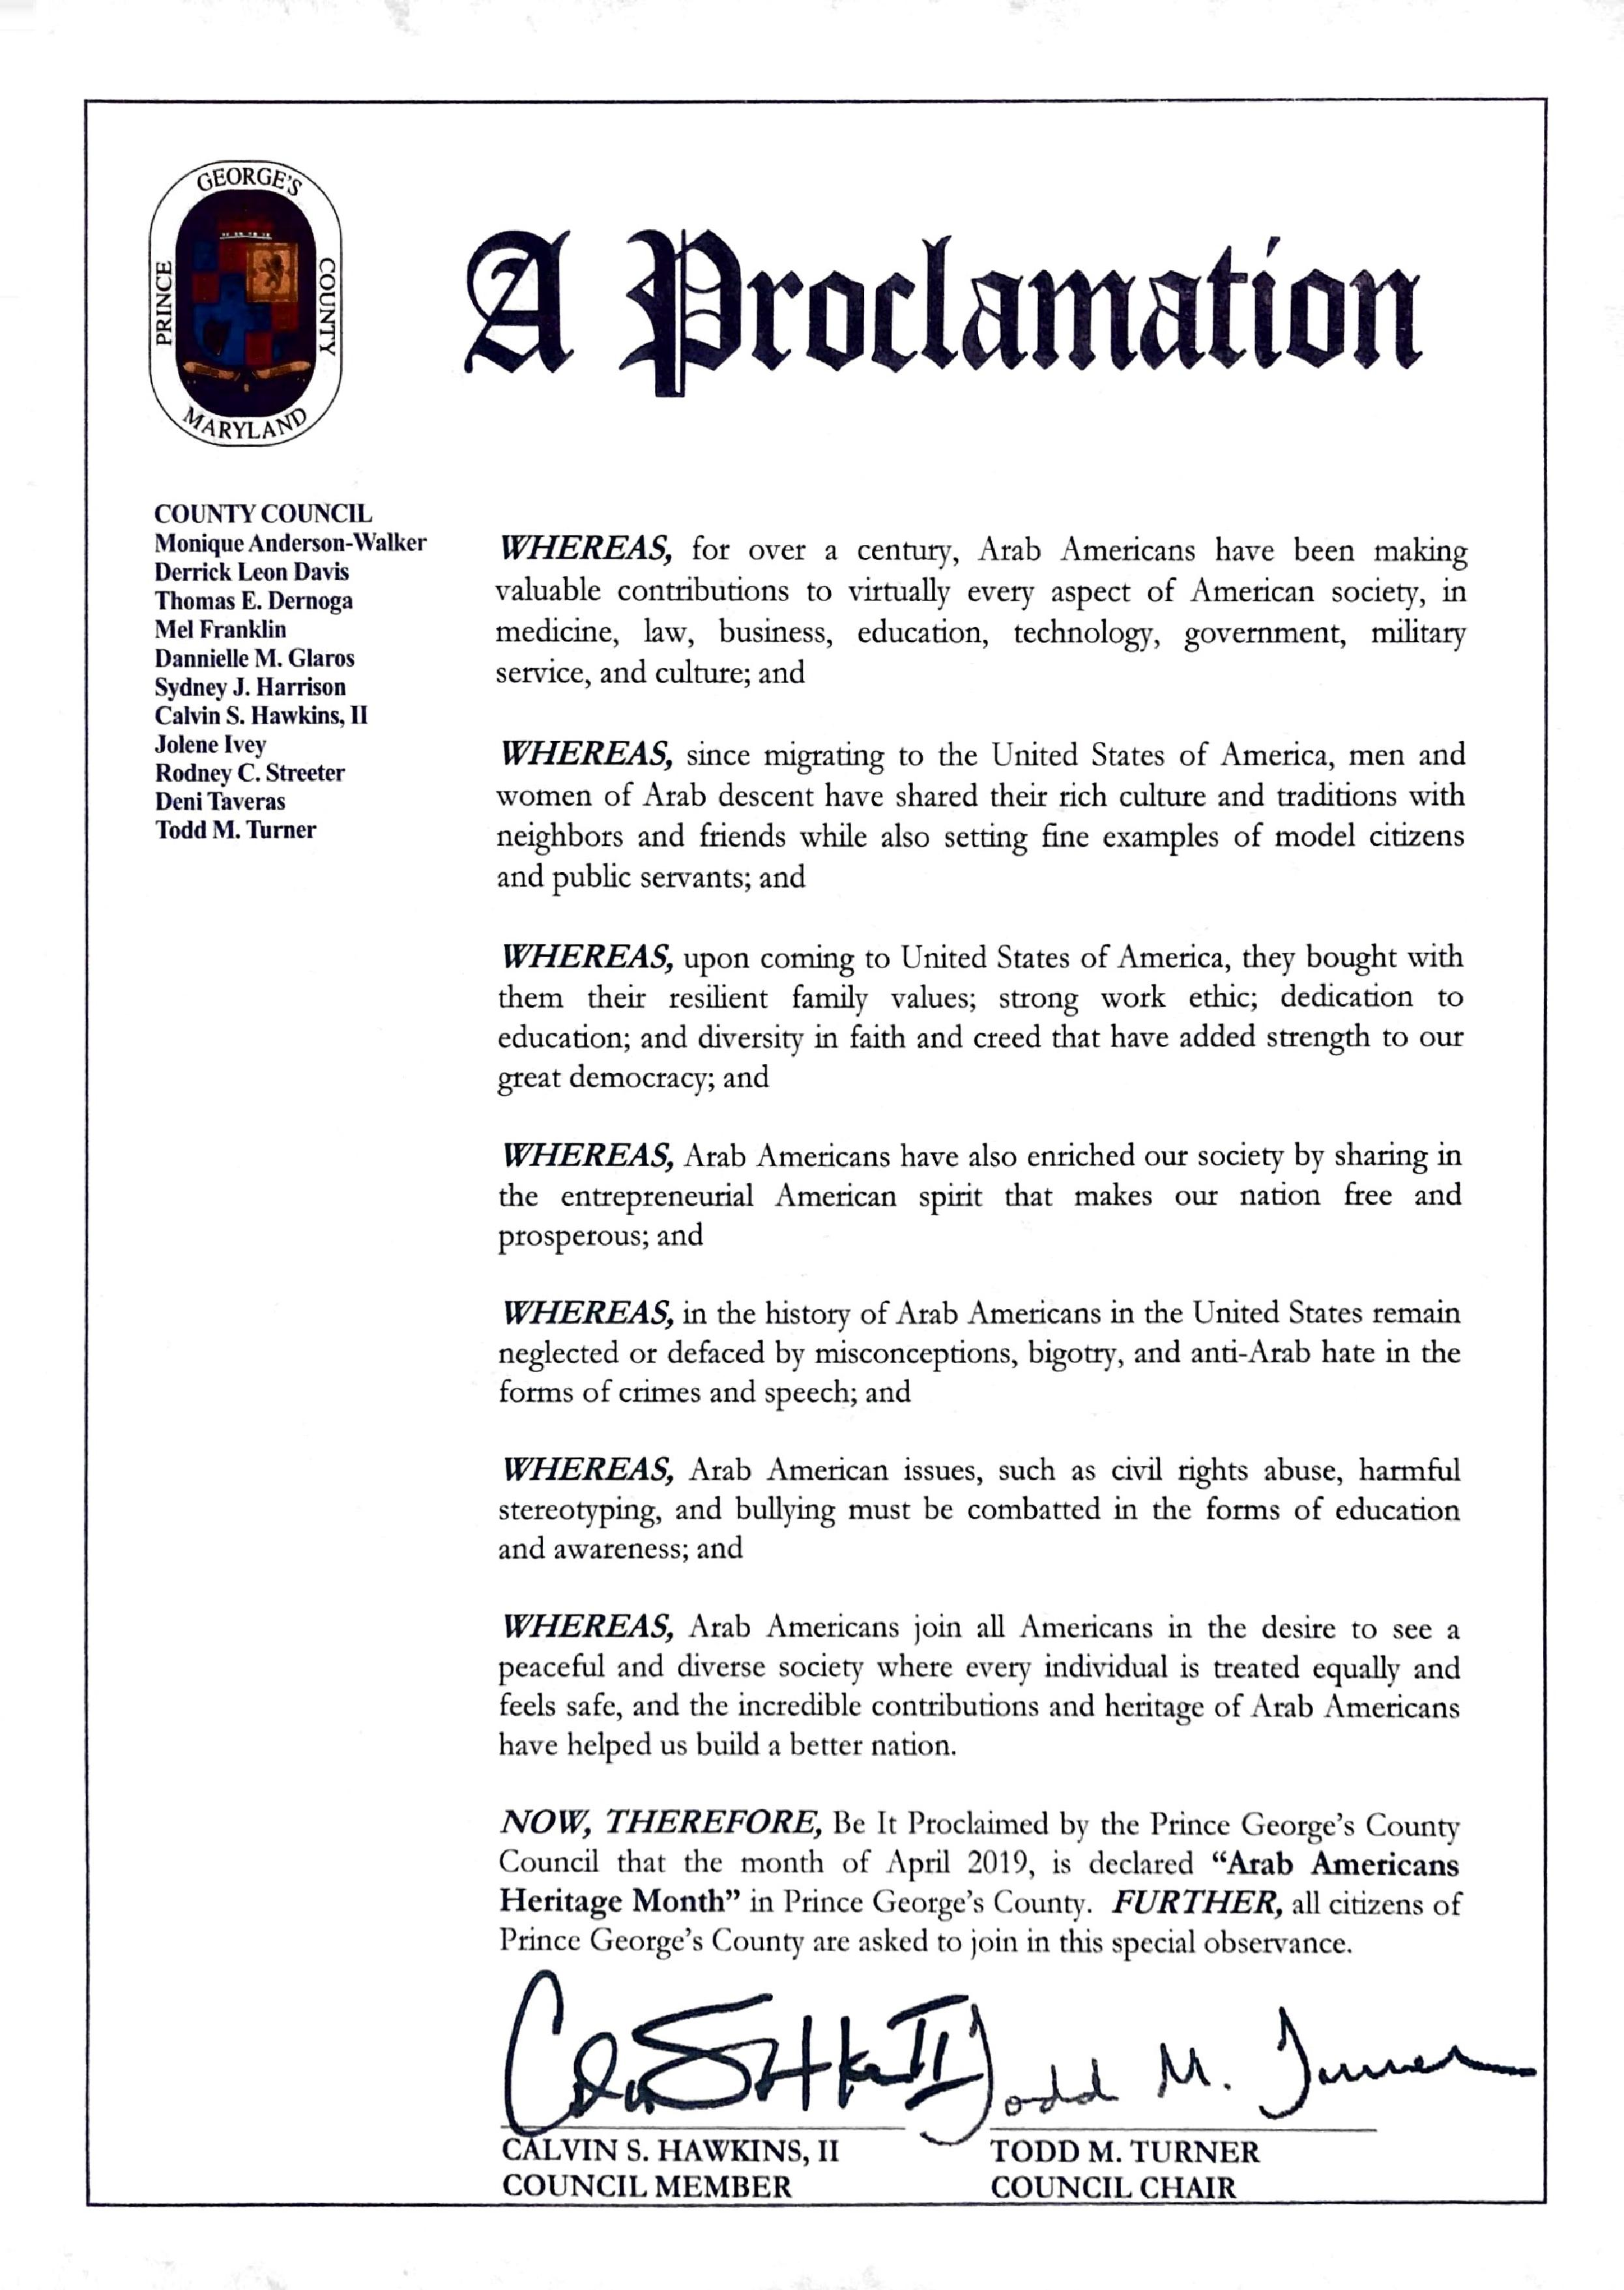 Prince Georges County.Proclamation_1.jpg